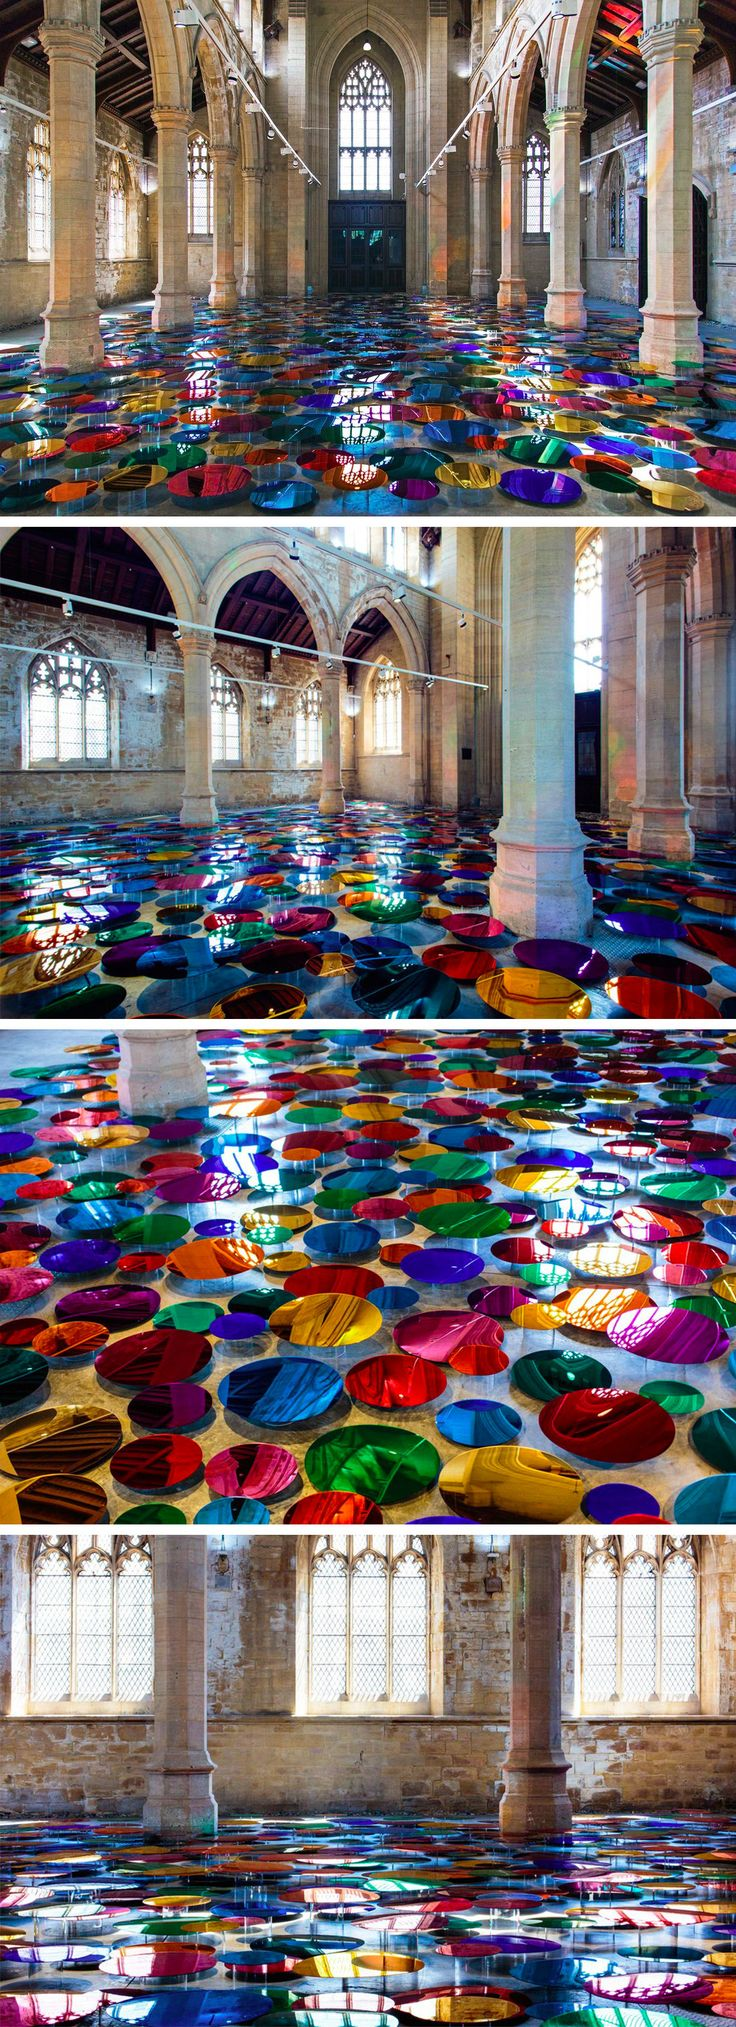 The Floor of an Historic Church Transformed Into a Reflective Pool of Multi-Colored Orbs by Liz West